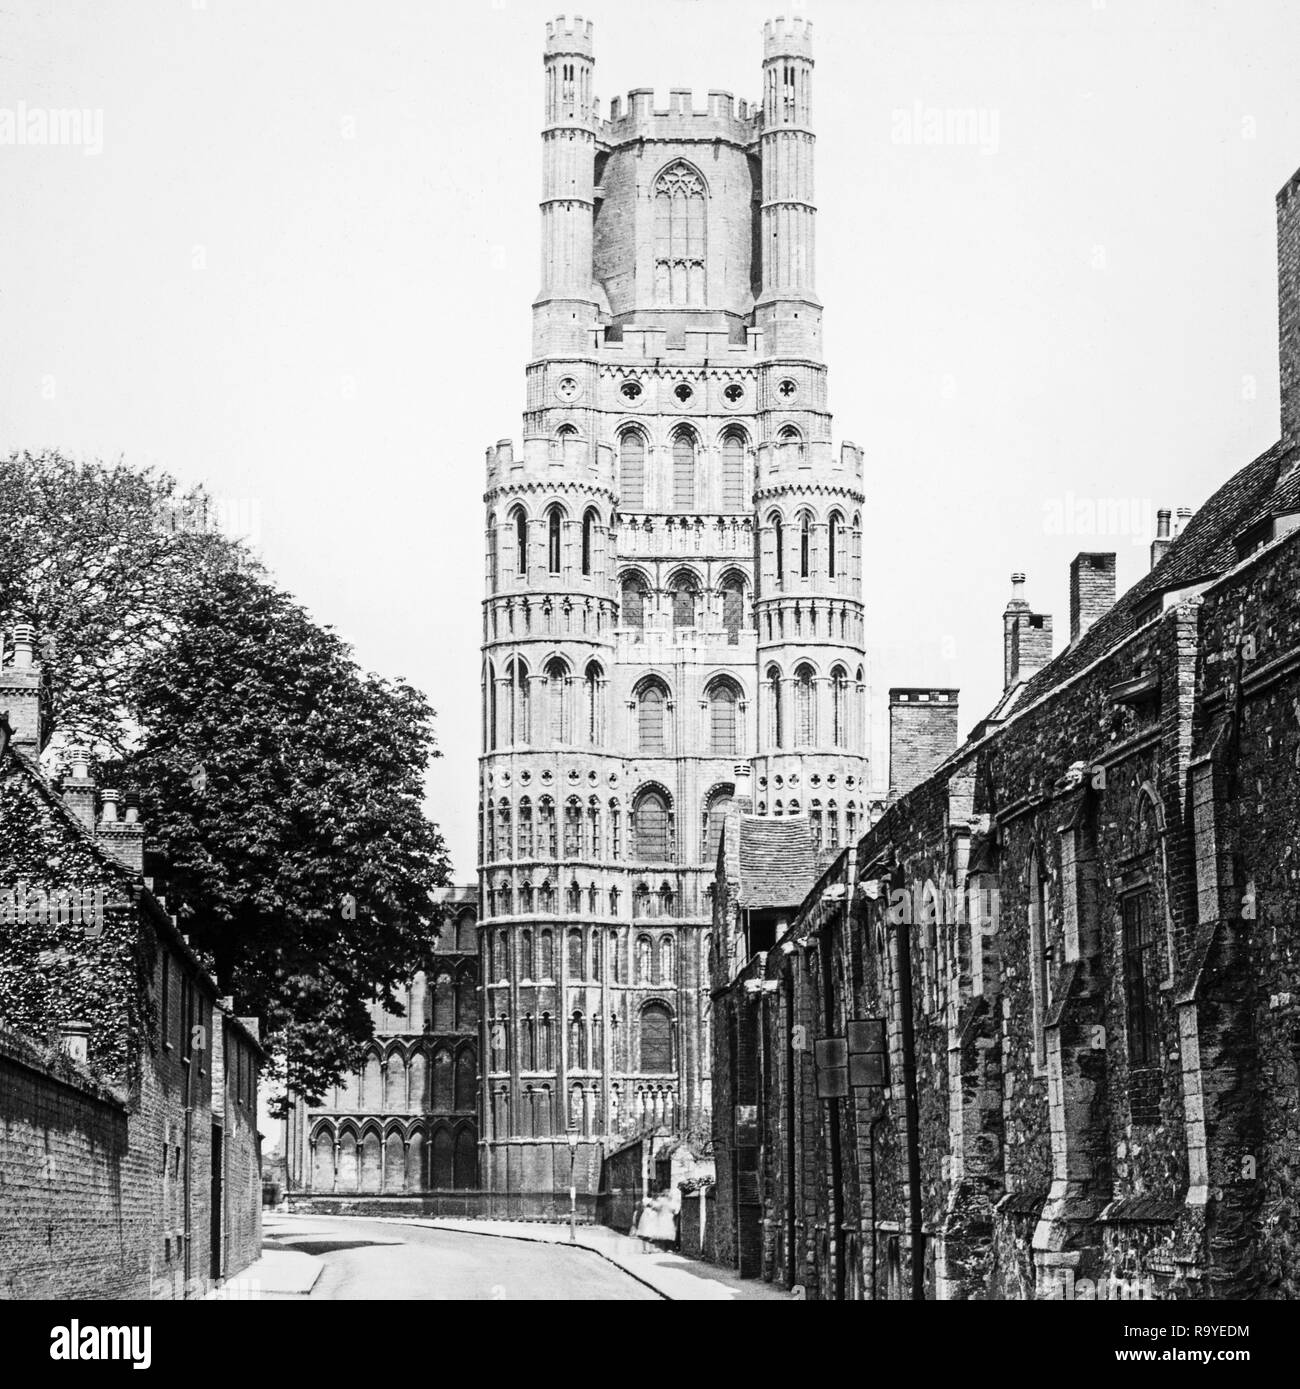 Late Victorian black and white photograph of Ely Cathedral in Cambridgeshire, England.The cathedral has its origins in AD 672 when St Etheldreda built an abbey church. The present building dates back to 1083, and cathedral status was granted it in 1109. Until the Reformation it was the Church of St Etheldreda and St Peter, at which point it was refounded as the Cathedral Church of the Holy and Undivided Trinity of Ely, continuing as the principal church of the Diocese of Ely, in Cambridgeshire. Photo also shows houses in the village. - Stock Image